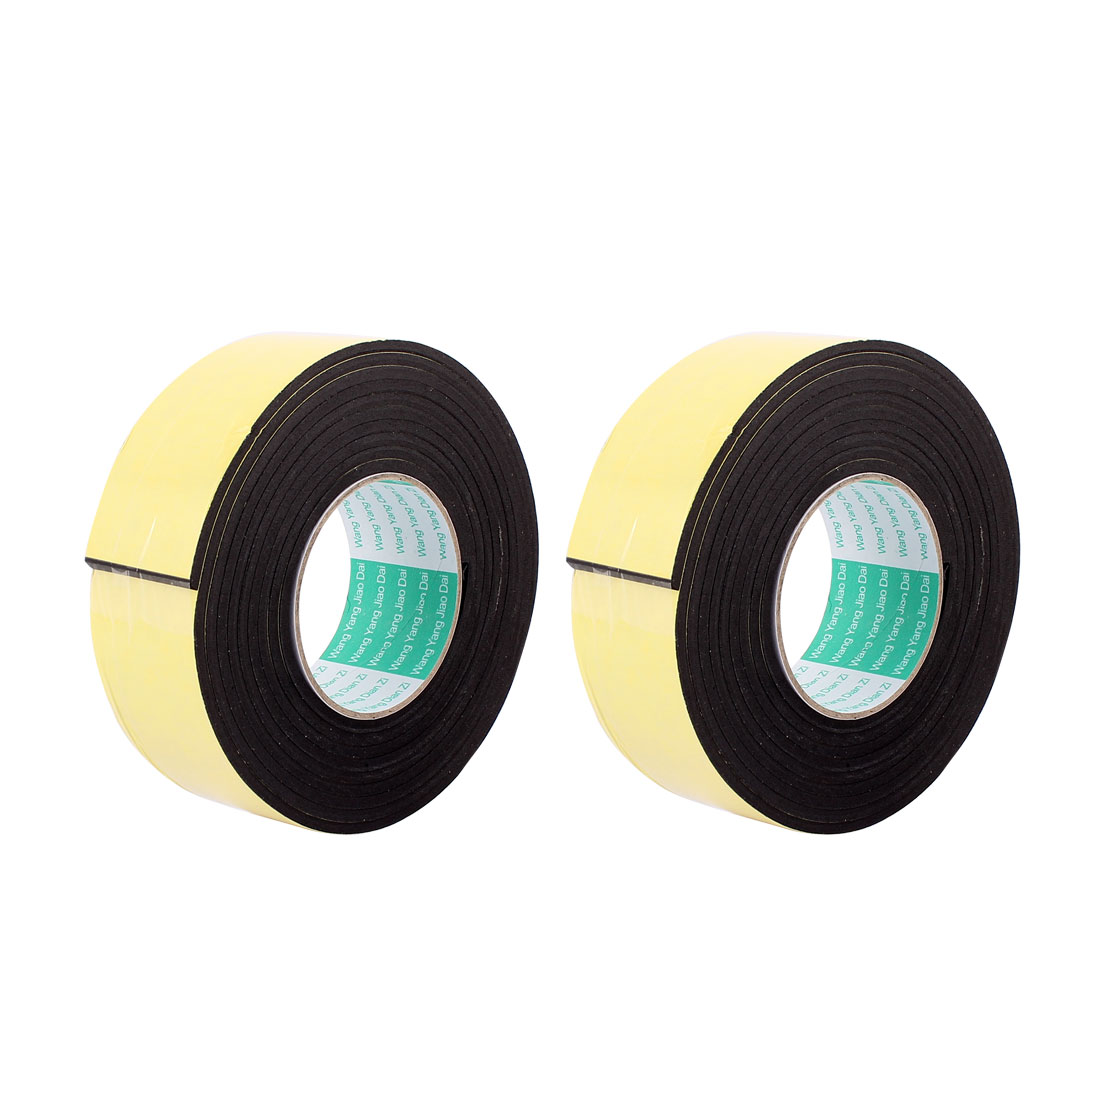 2 Pcs 50mmx4mm Single Sided Sponge Tape Adhesive Sticker Foam Glue Strip Sealing 3 Meters 10Ft